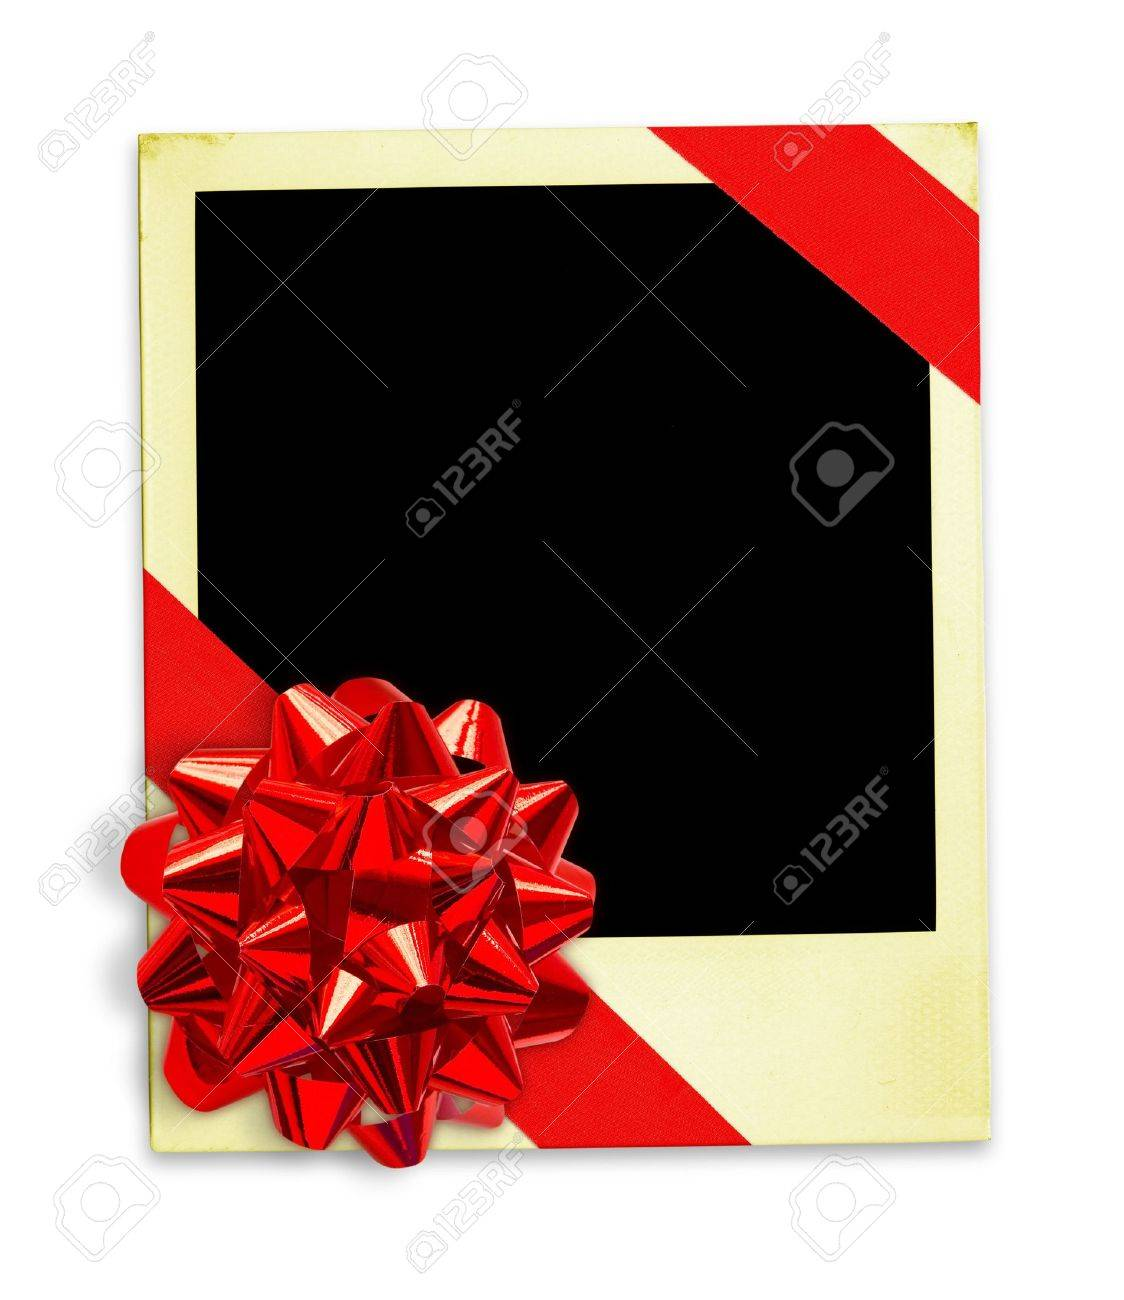 Red gift bows border with clipping path for easy background removing - Frame Wrapped In A Gift Bow With Clipping Paths For Easy Framing Your Picture And